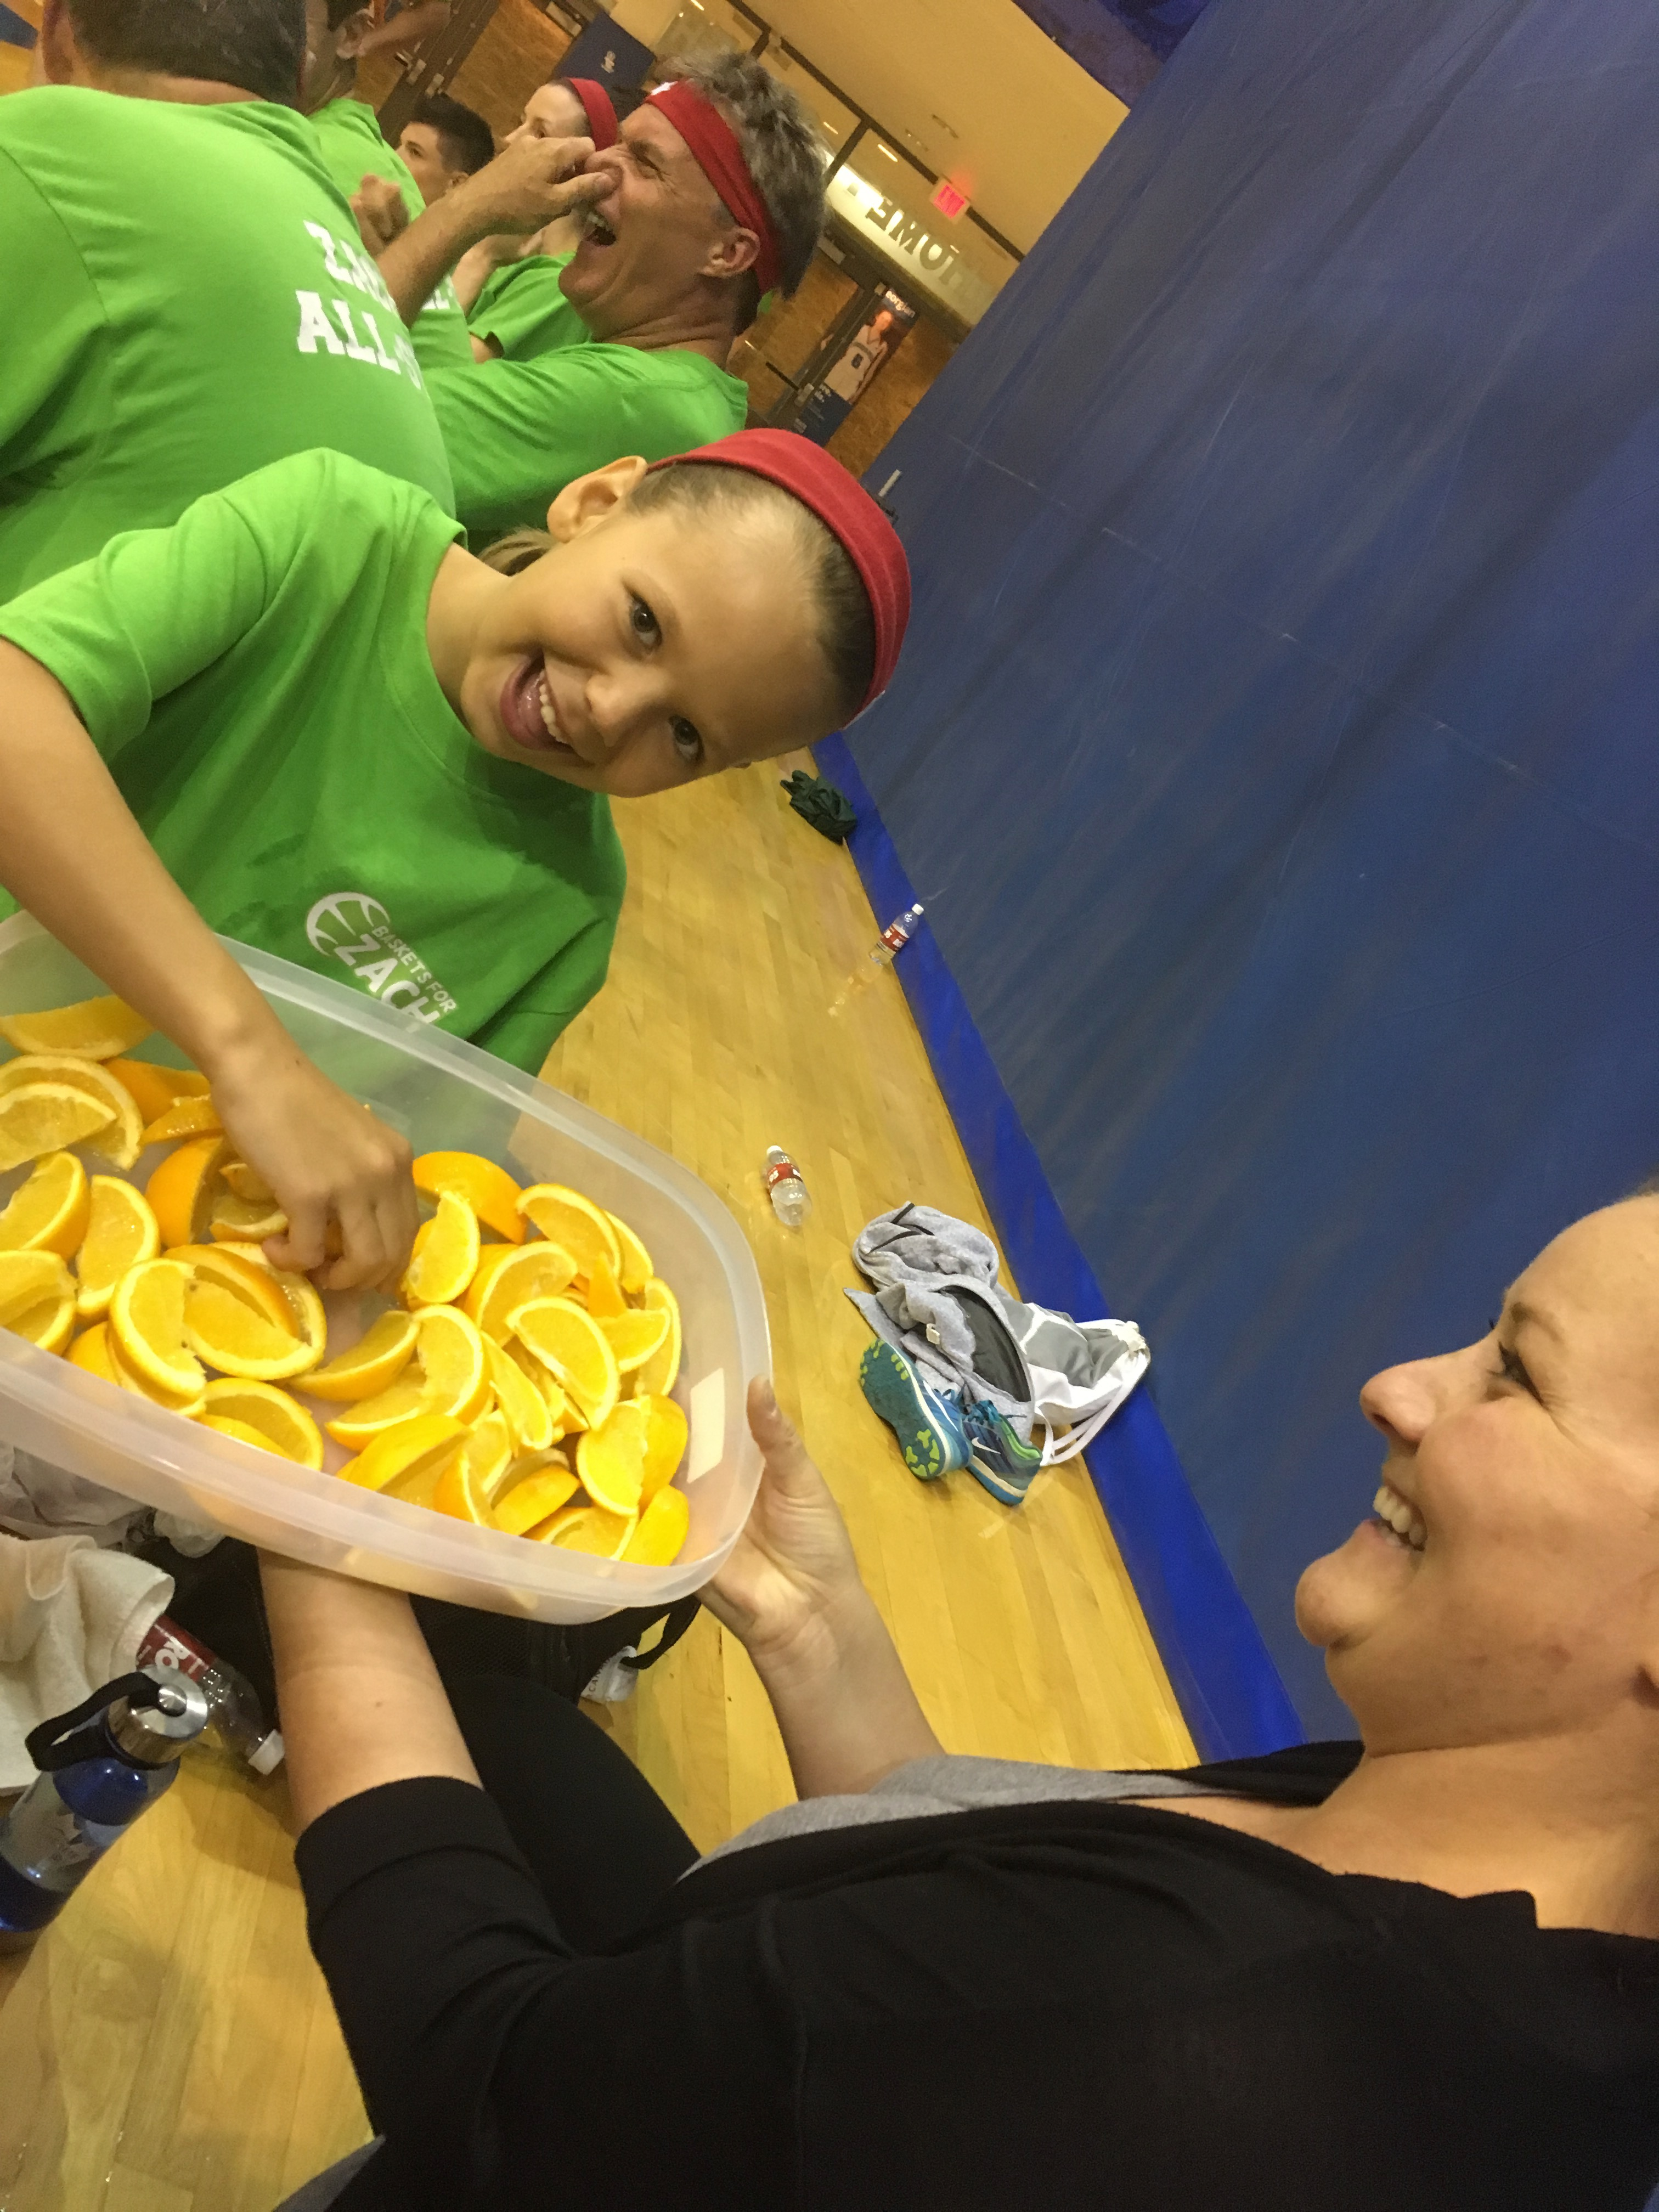 Lucy was our youngest player - and quite a spitfire on the court! Her favourite part was the oranges ;)